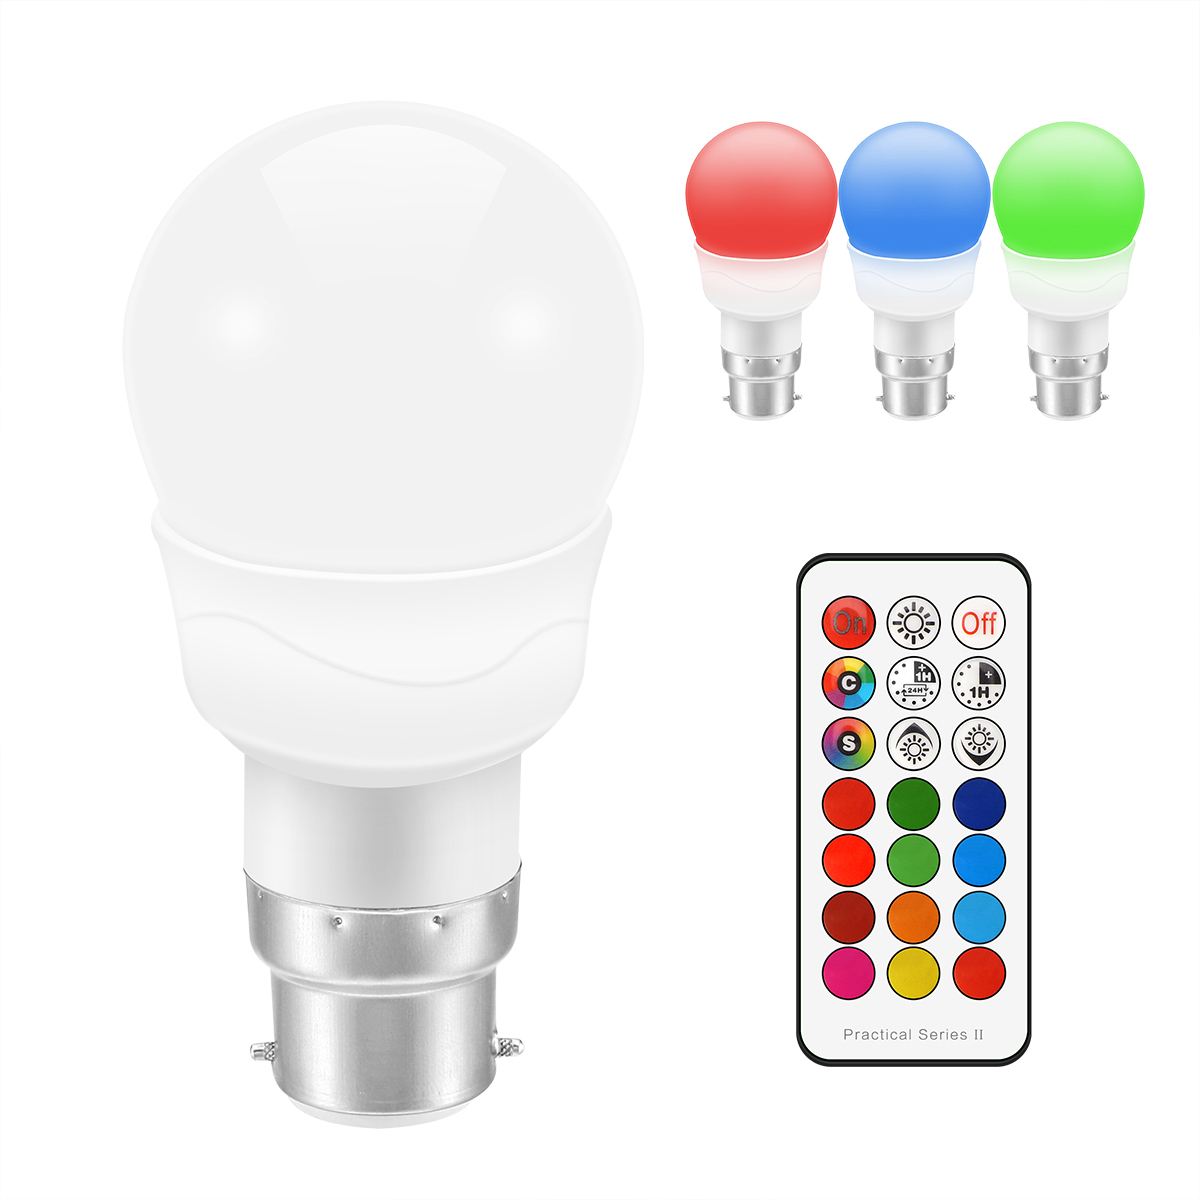 rgb led bulb e27 b22 3w rgb dimmable ampoule led smart. Black Bedroom Furniture Sets. Home Design Ideas